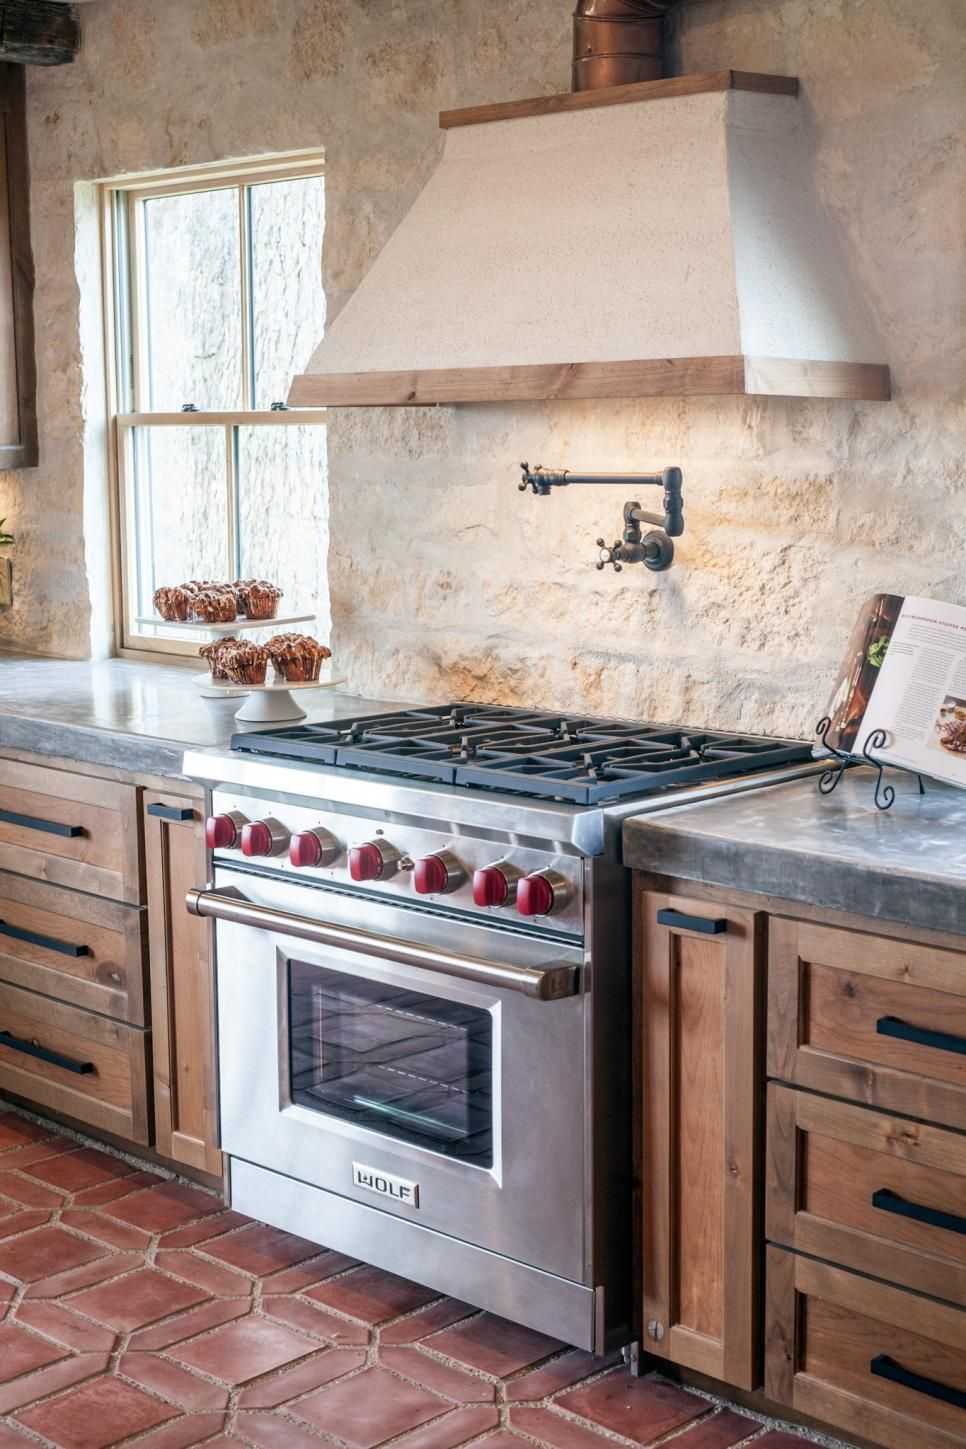 Fixer upper home kitchen - Check Out 23 Southwestern Kitchen Designs To Your Home The Southwestern Style Originates From The Warm And Bold Designs That Can Be Found In The Southwest